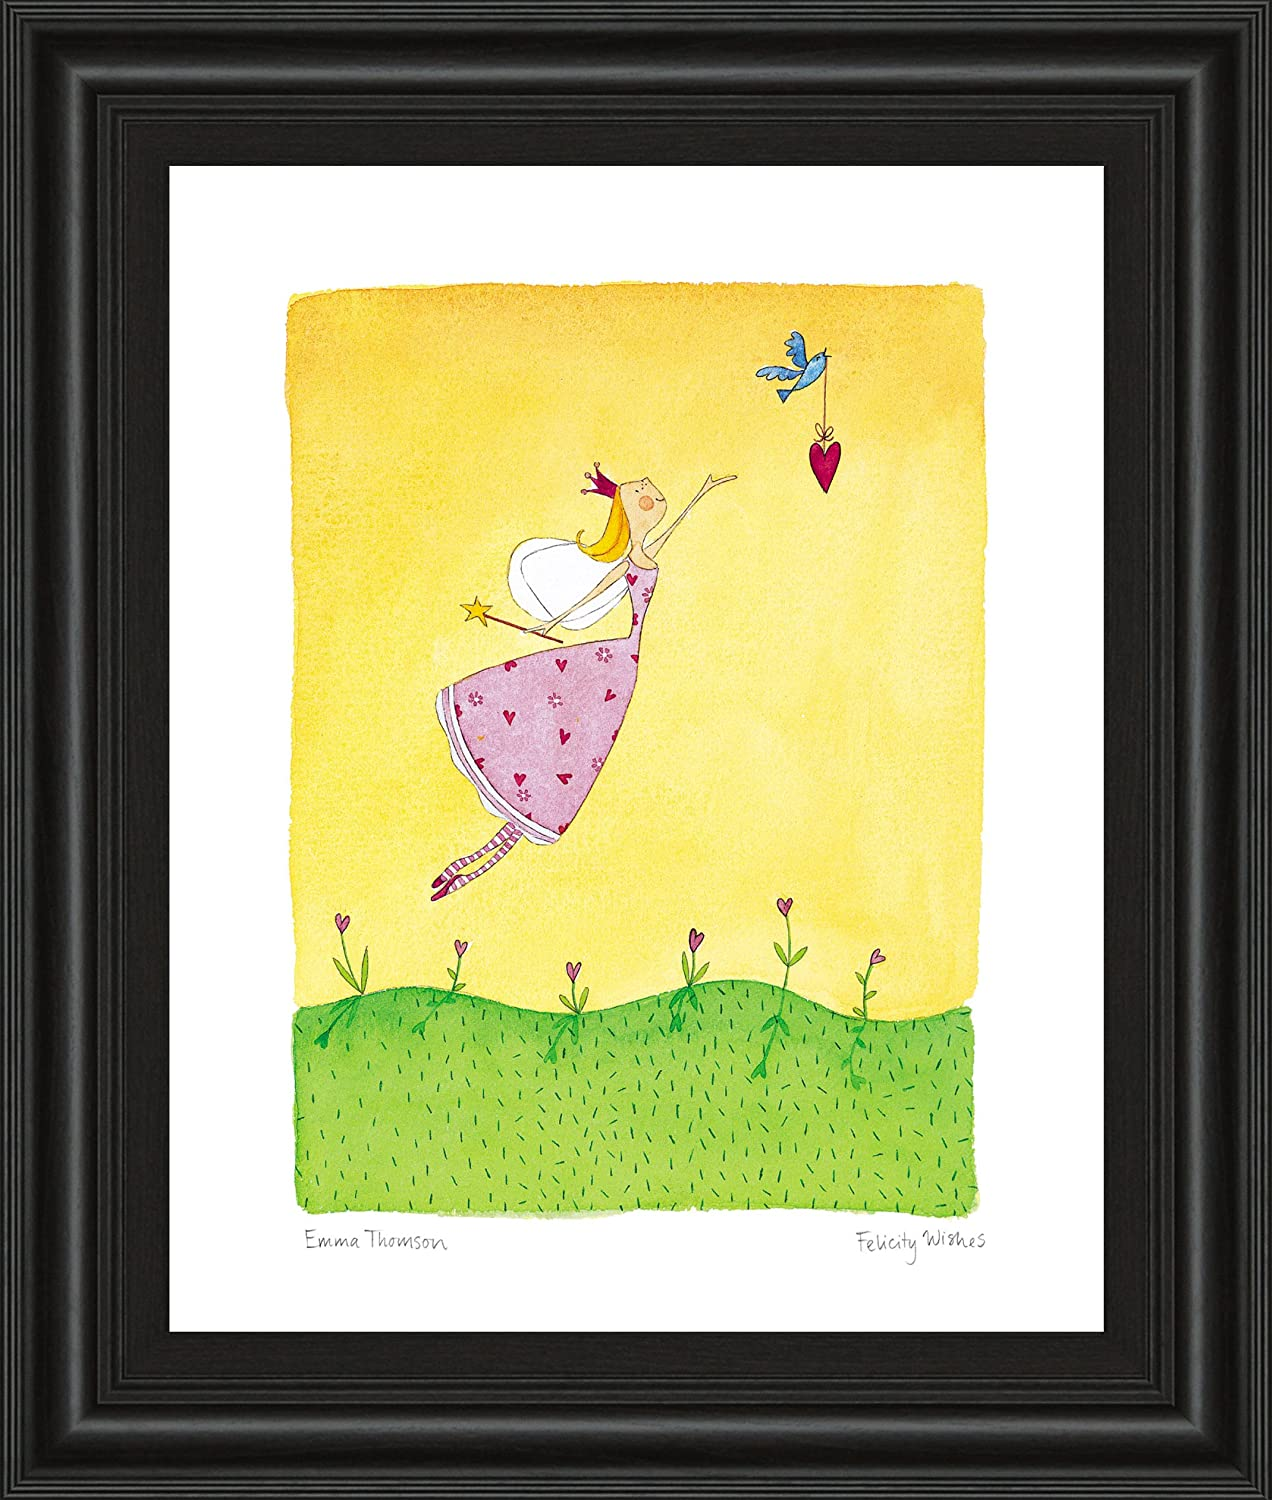 Amazon Com Classy Art 4967 Felicity Wishes Ii Framed Prints By Emma Thomson Posters Prints